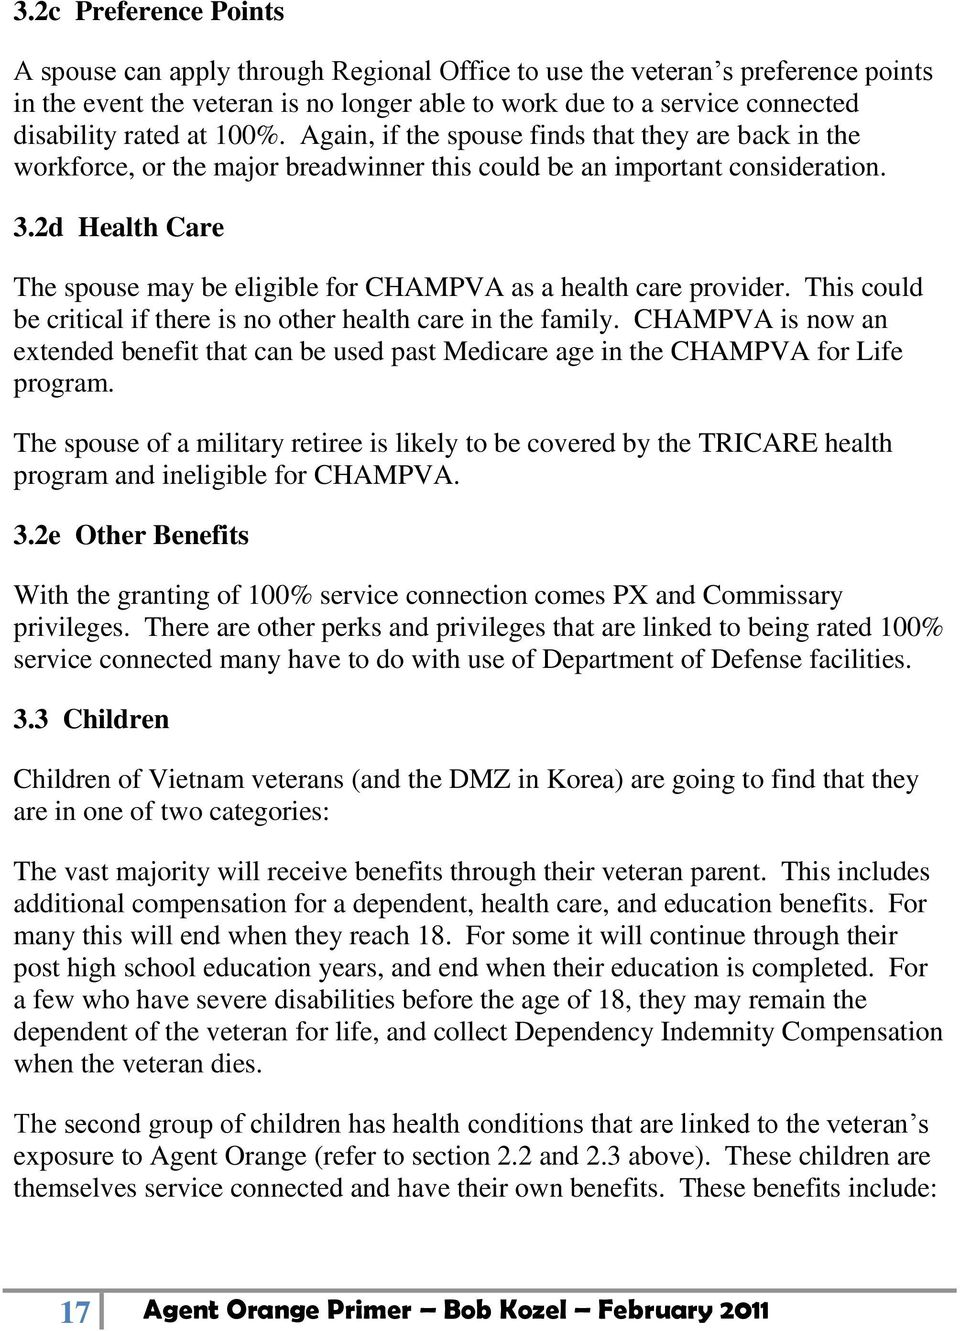 2d Health Care The spouse may be eligible for CHAMPVA as a health care provider. This could be critical if there is no other health care in the family.